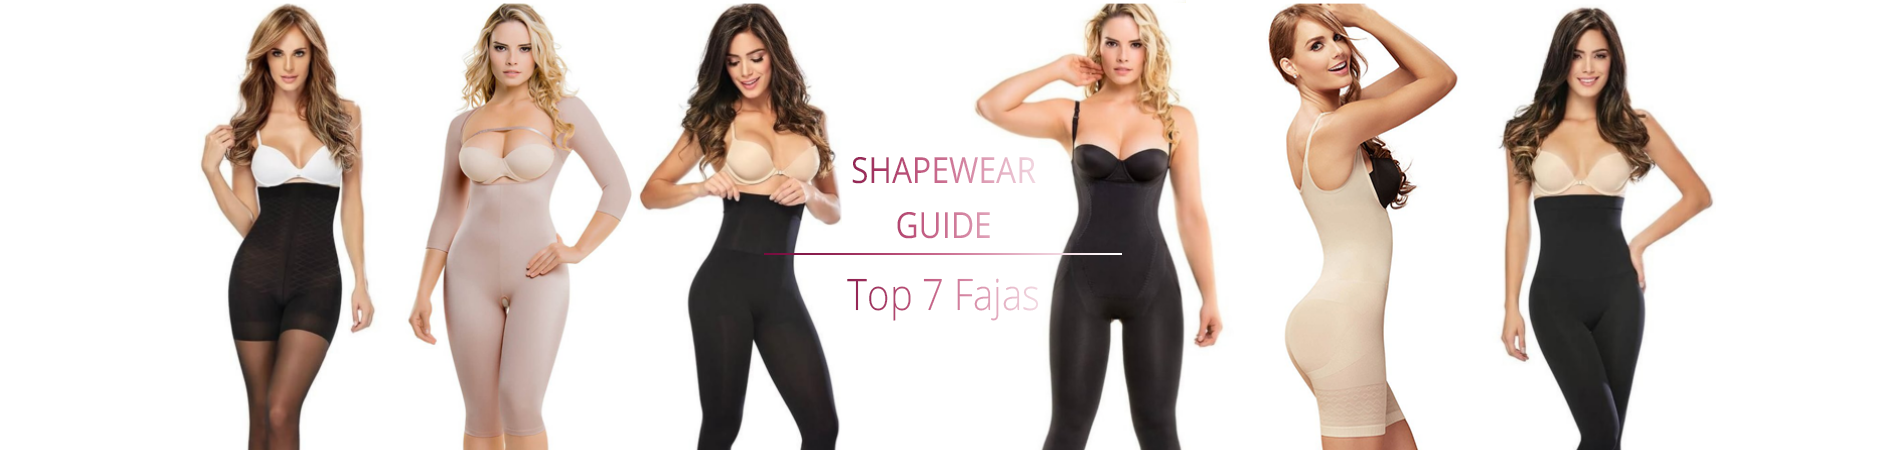 Top 7 Fajas Brands Guide